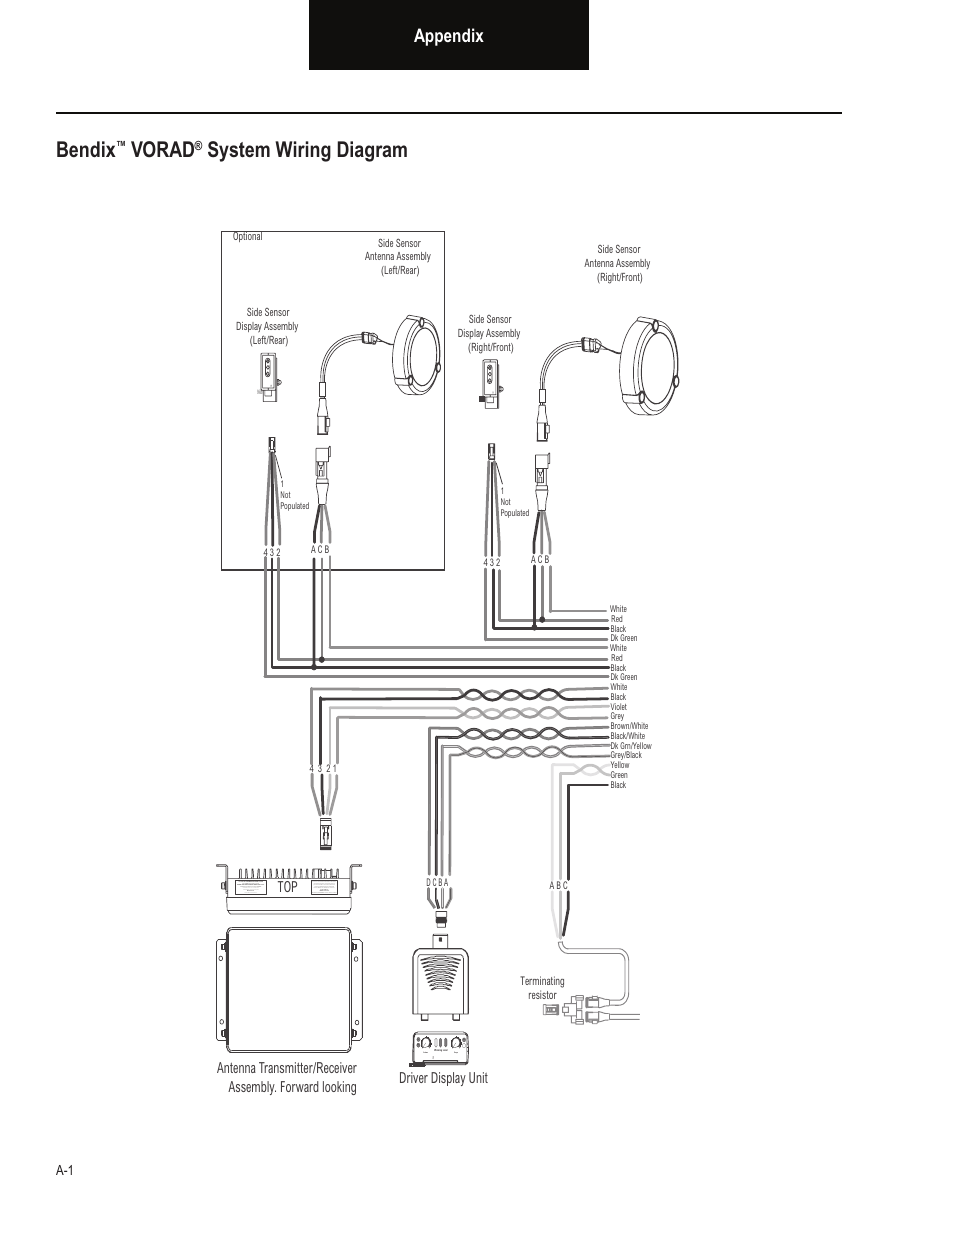 bendix wiring diagram